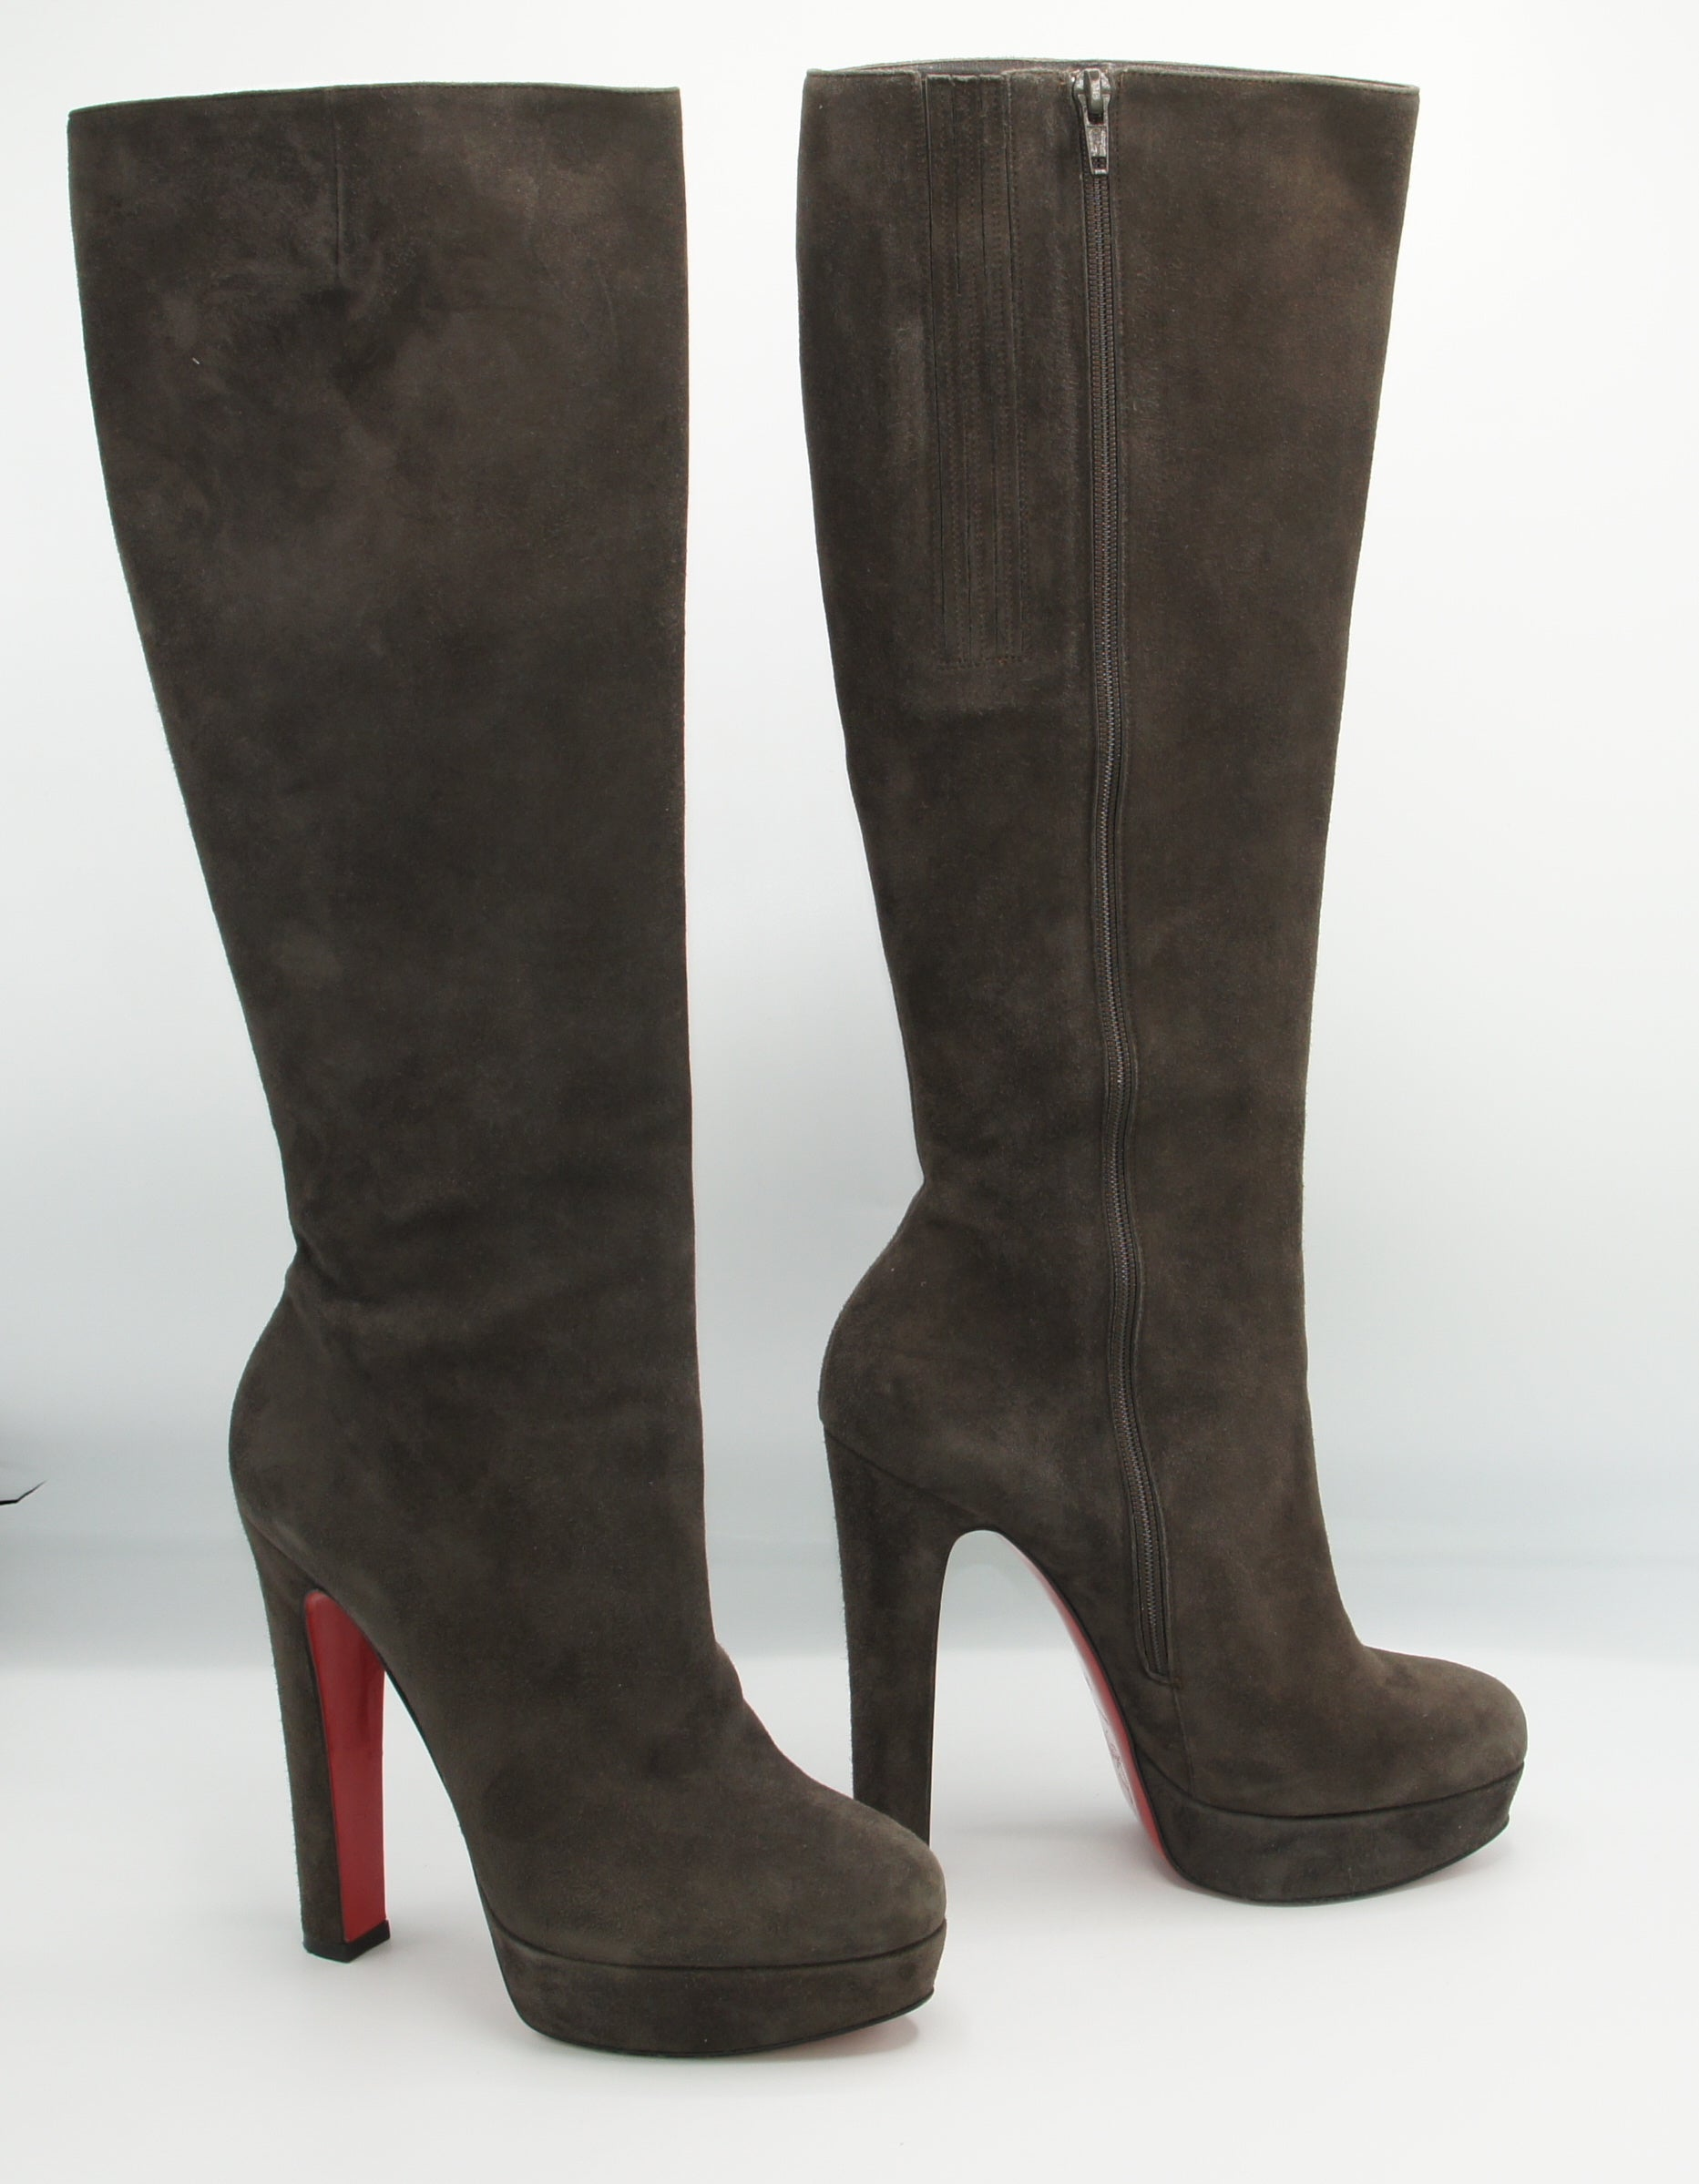 Christian Louboutin suede boots, 39 - Iconics Preloved Luxury